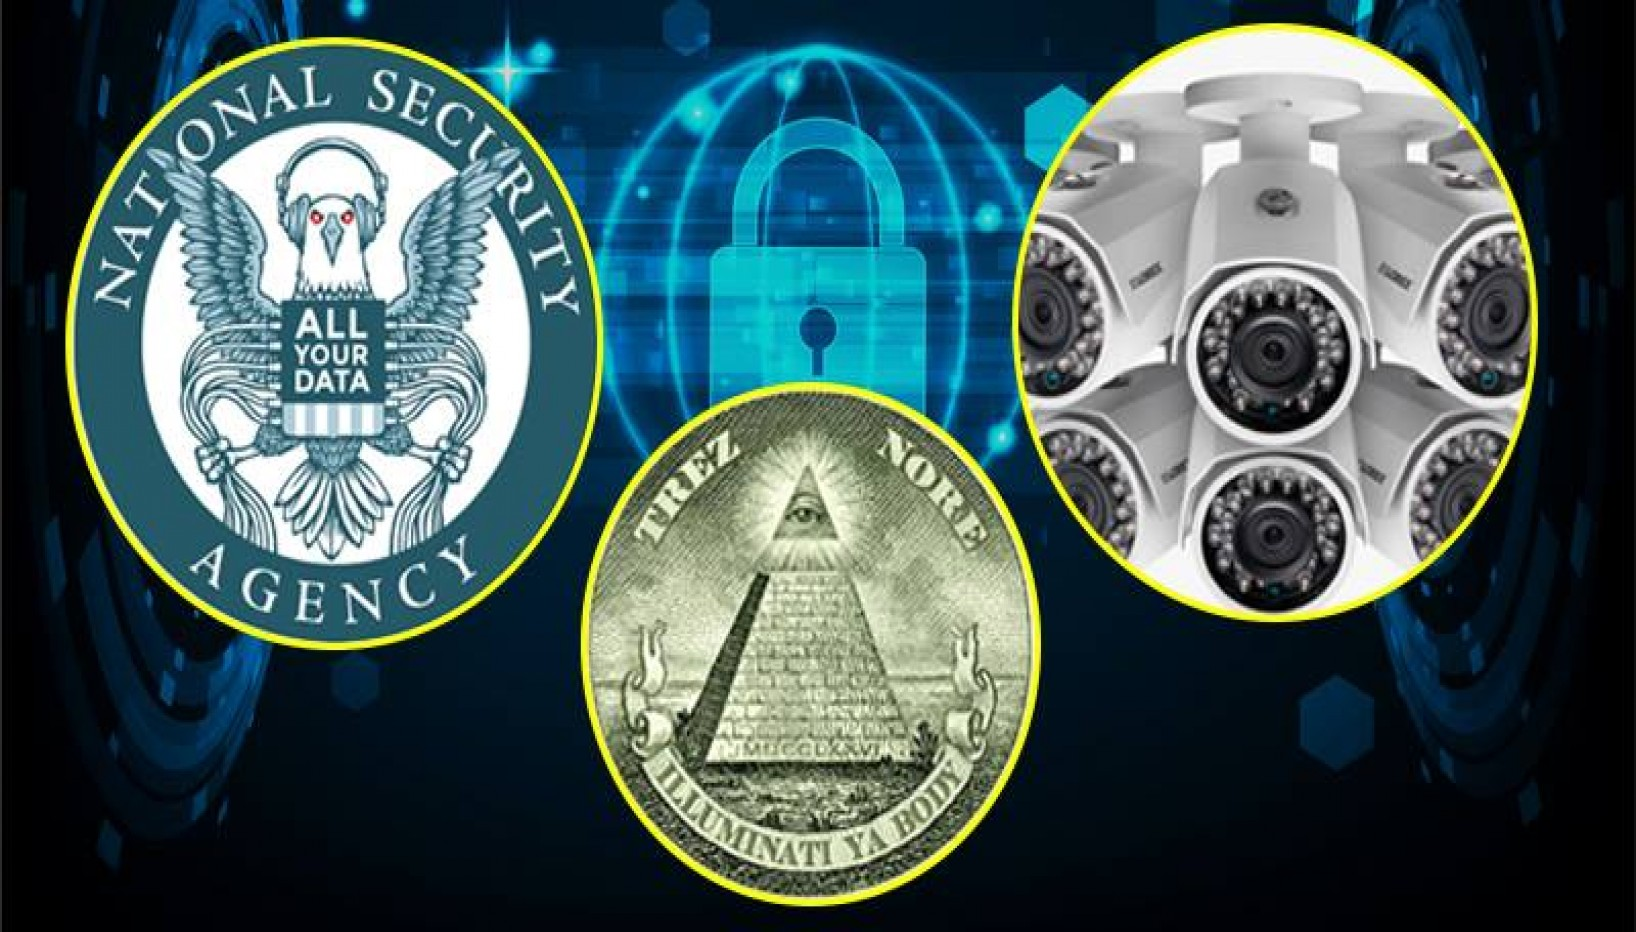 7 Times Governments Have Spied On Its People And Each Other